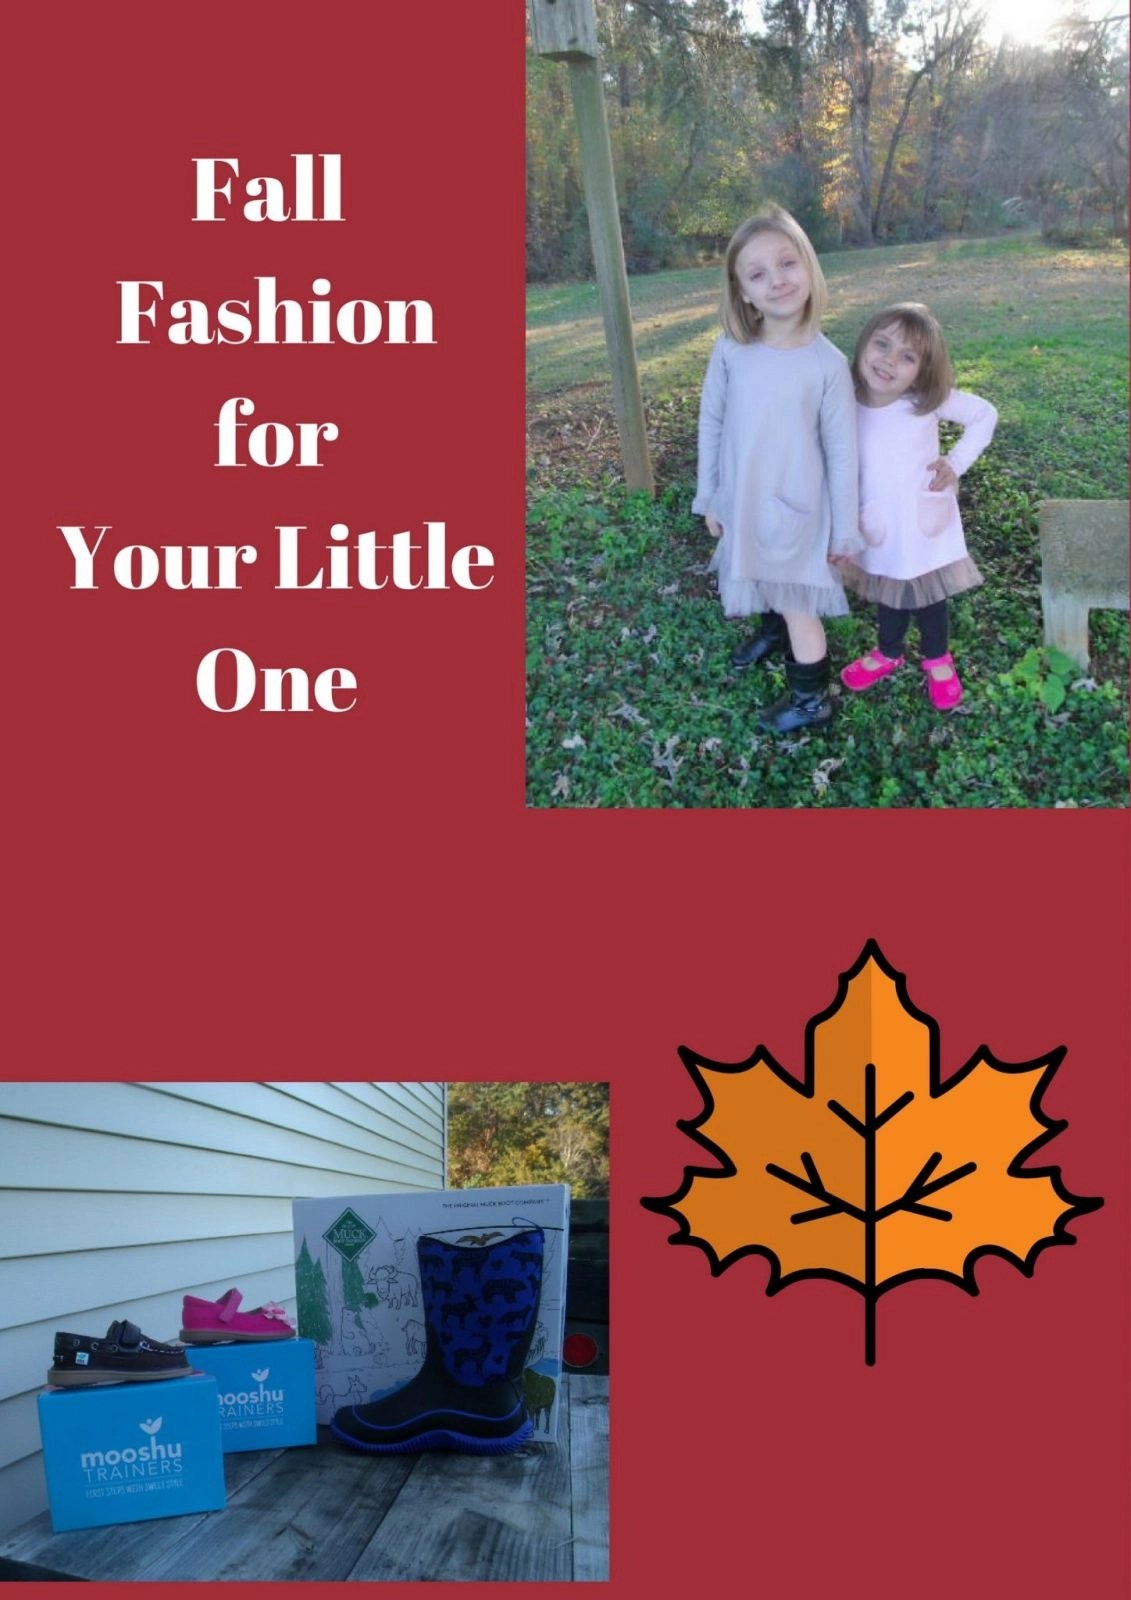 Fall Fashion for Your Little One